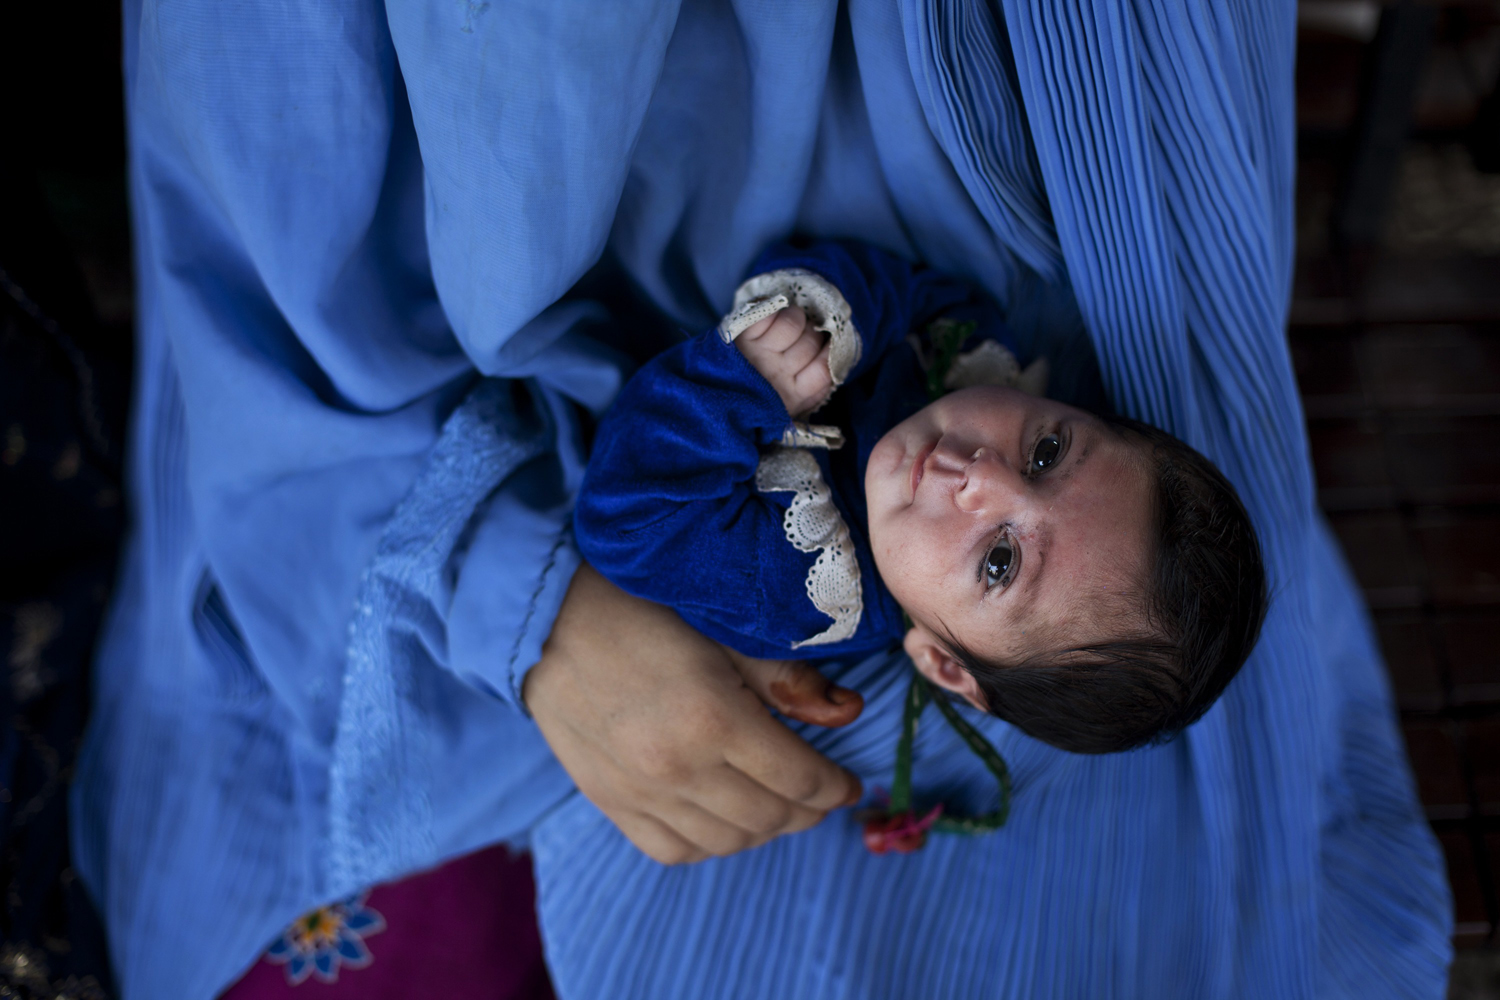 September 11, 2011. An Afghan woman holds her her 11-day-old daughter as they await to go back to Afghanistan from a United Nations funded repatriation centre in the western city of Peshawar. About 3.5 million Afghans have returned home since 2002 from Pakistan with the assistance of aid agencies.